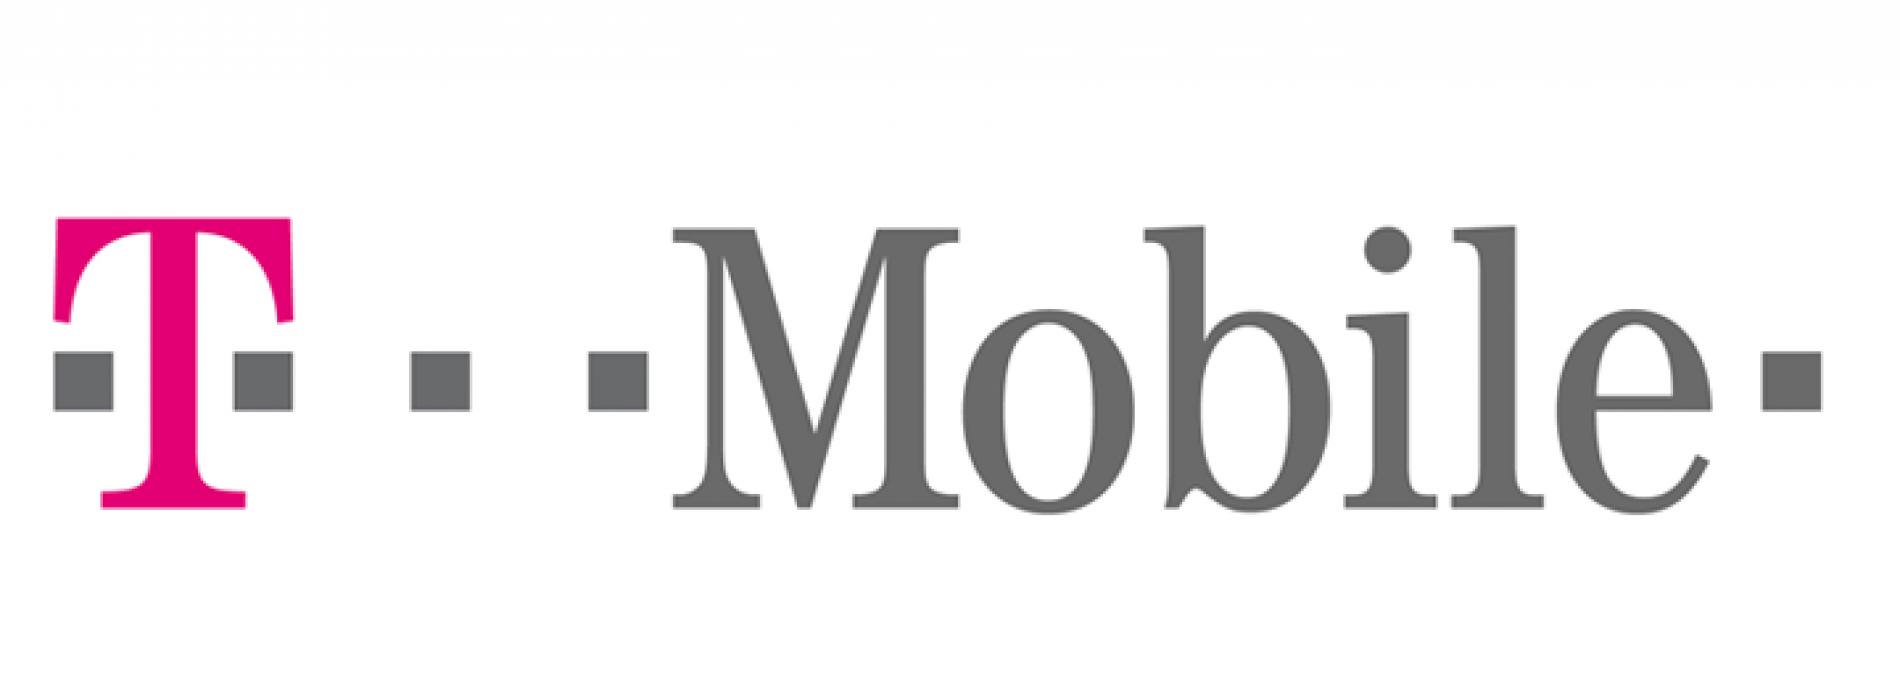 T-Mobile announces $45 Simple Starter plan with 2GB data for September 3